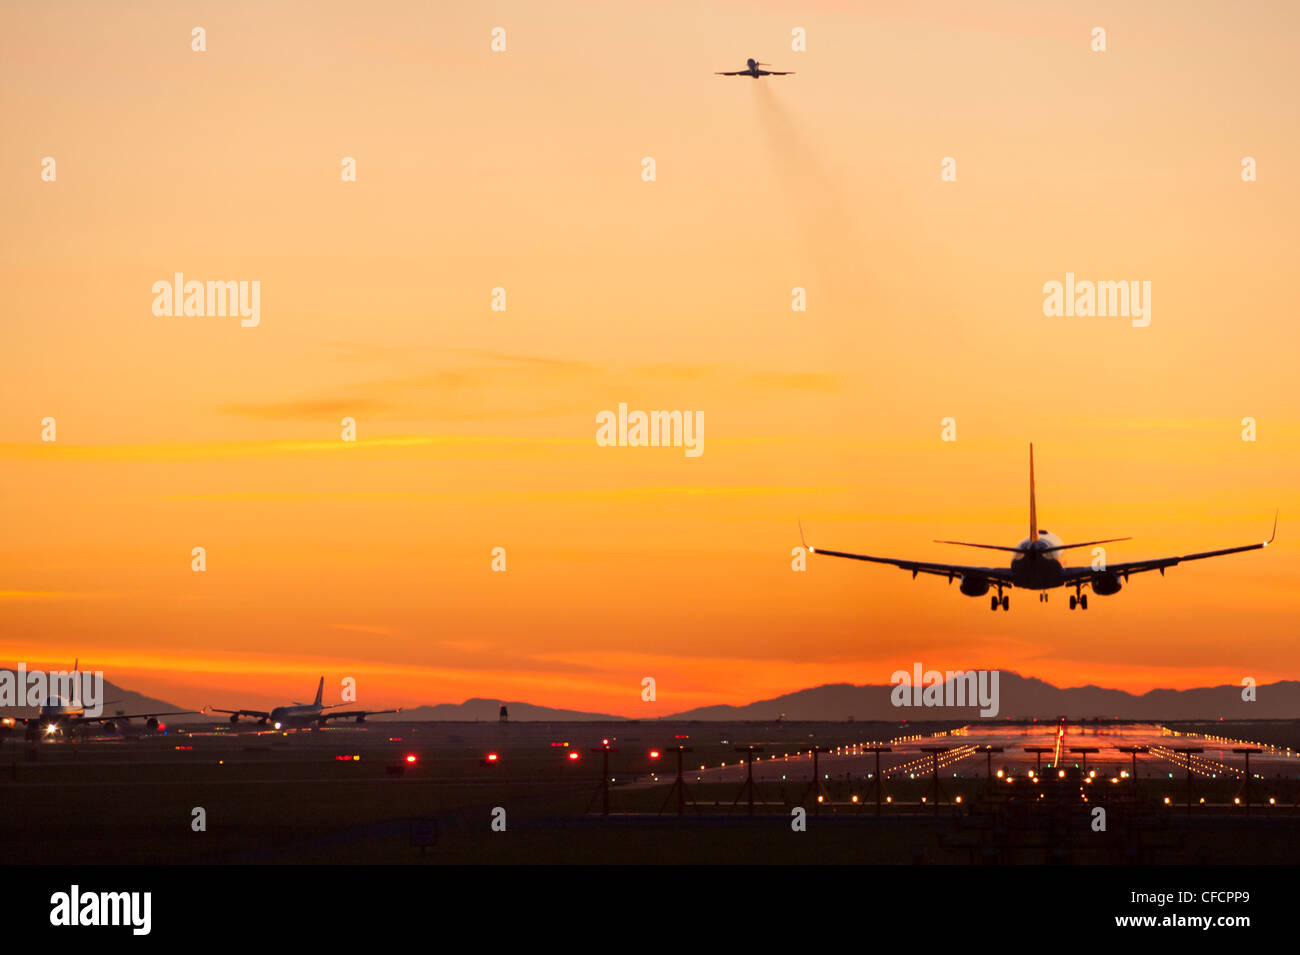 Inbound, outbound and taxiing aircraft. - Stock Image